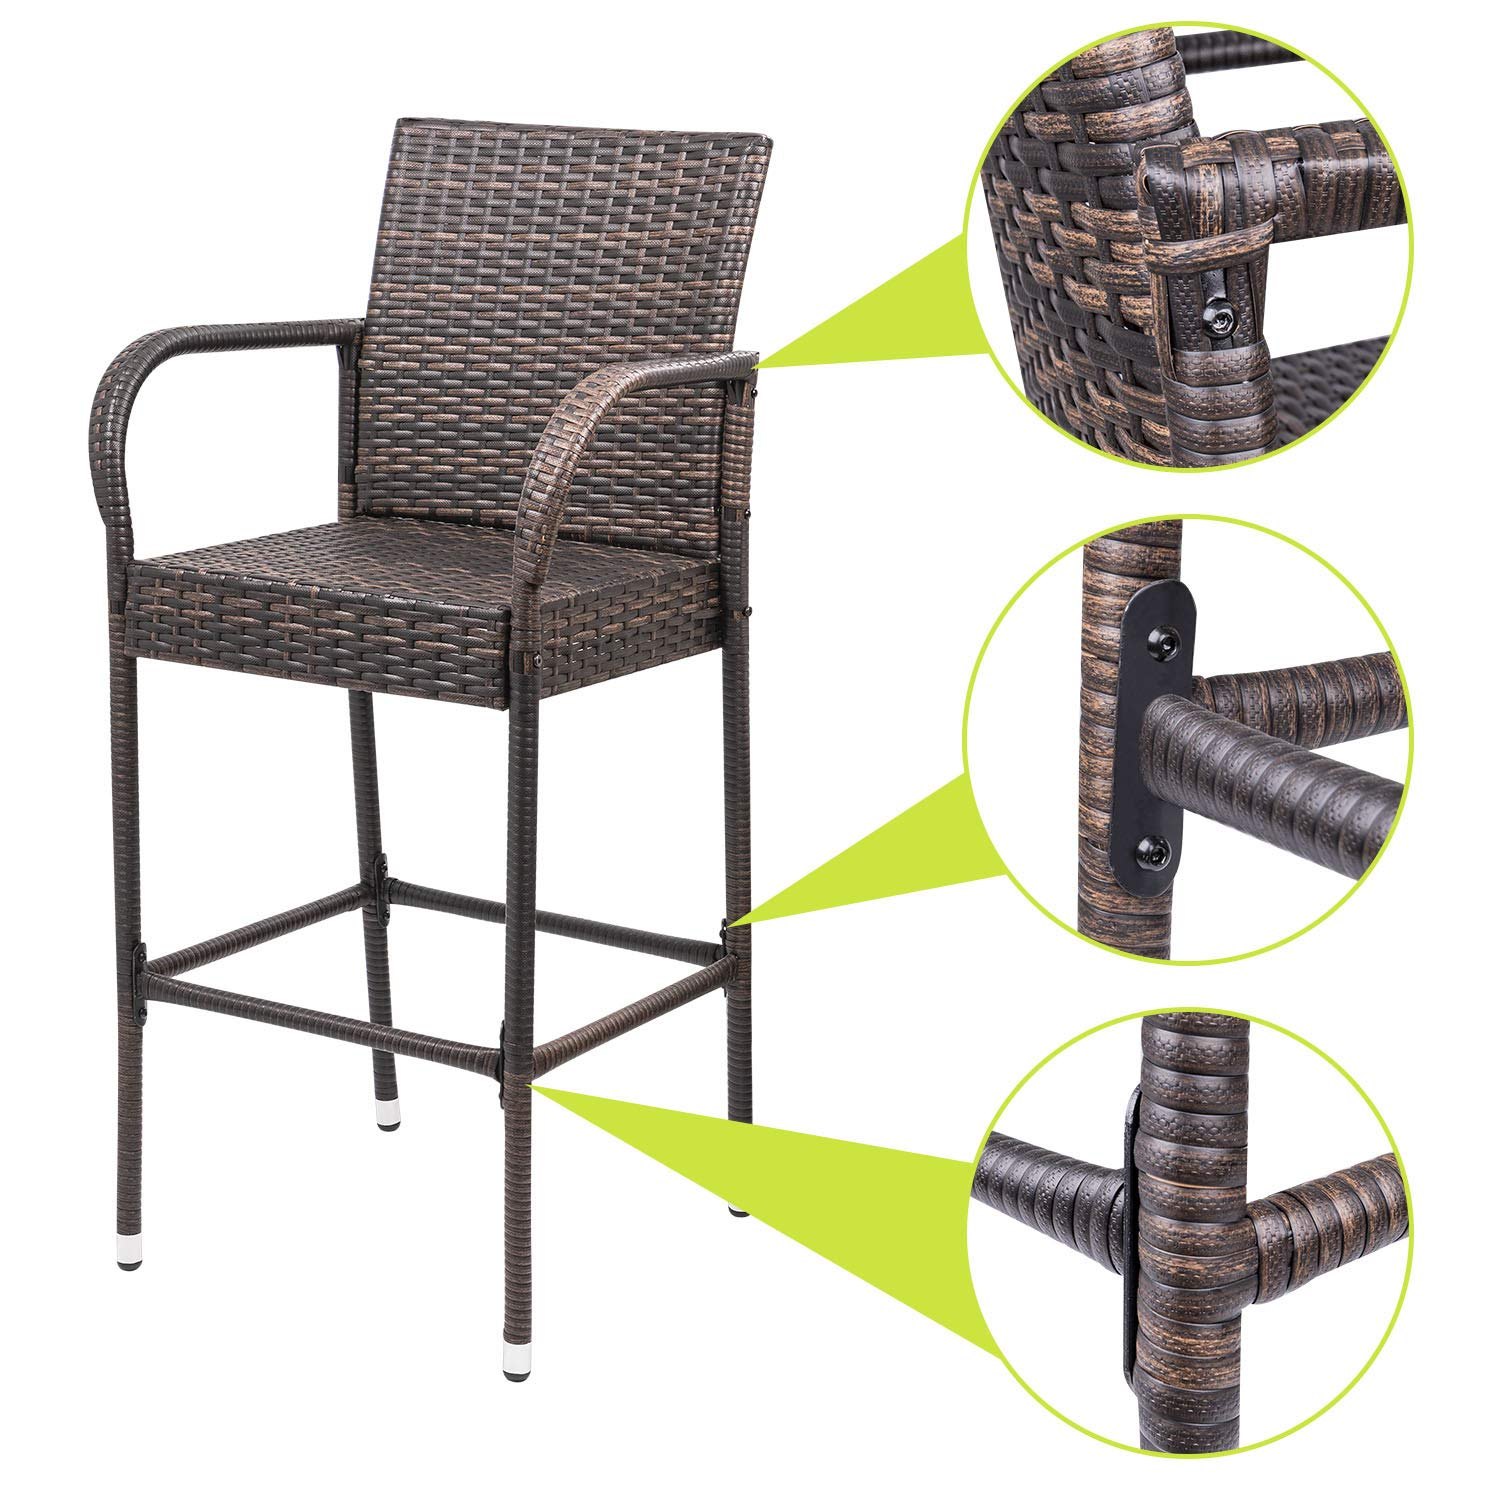 Homall Patio Bar Stools Wicker Barstools Indoor Outdoor Bar Stool Patio Furniture with Footrest and Armrest for Garden Pool Lawn Backyard Set of 2 (Brown) by Homall (Image #1)